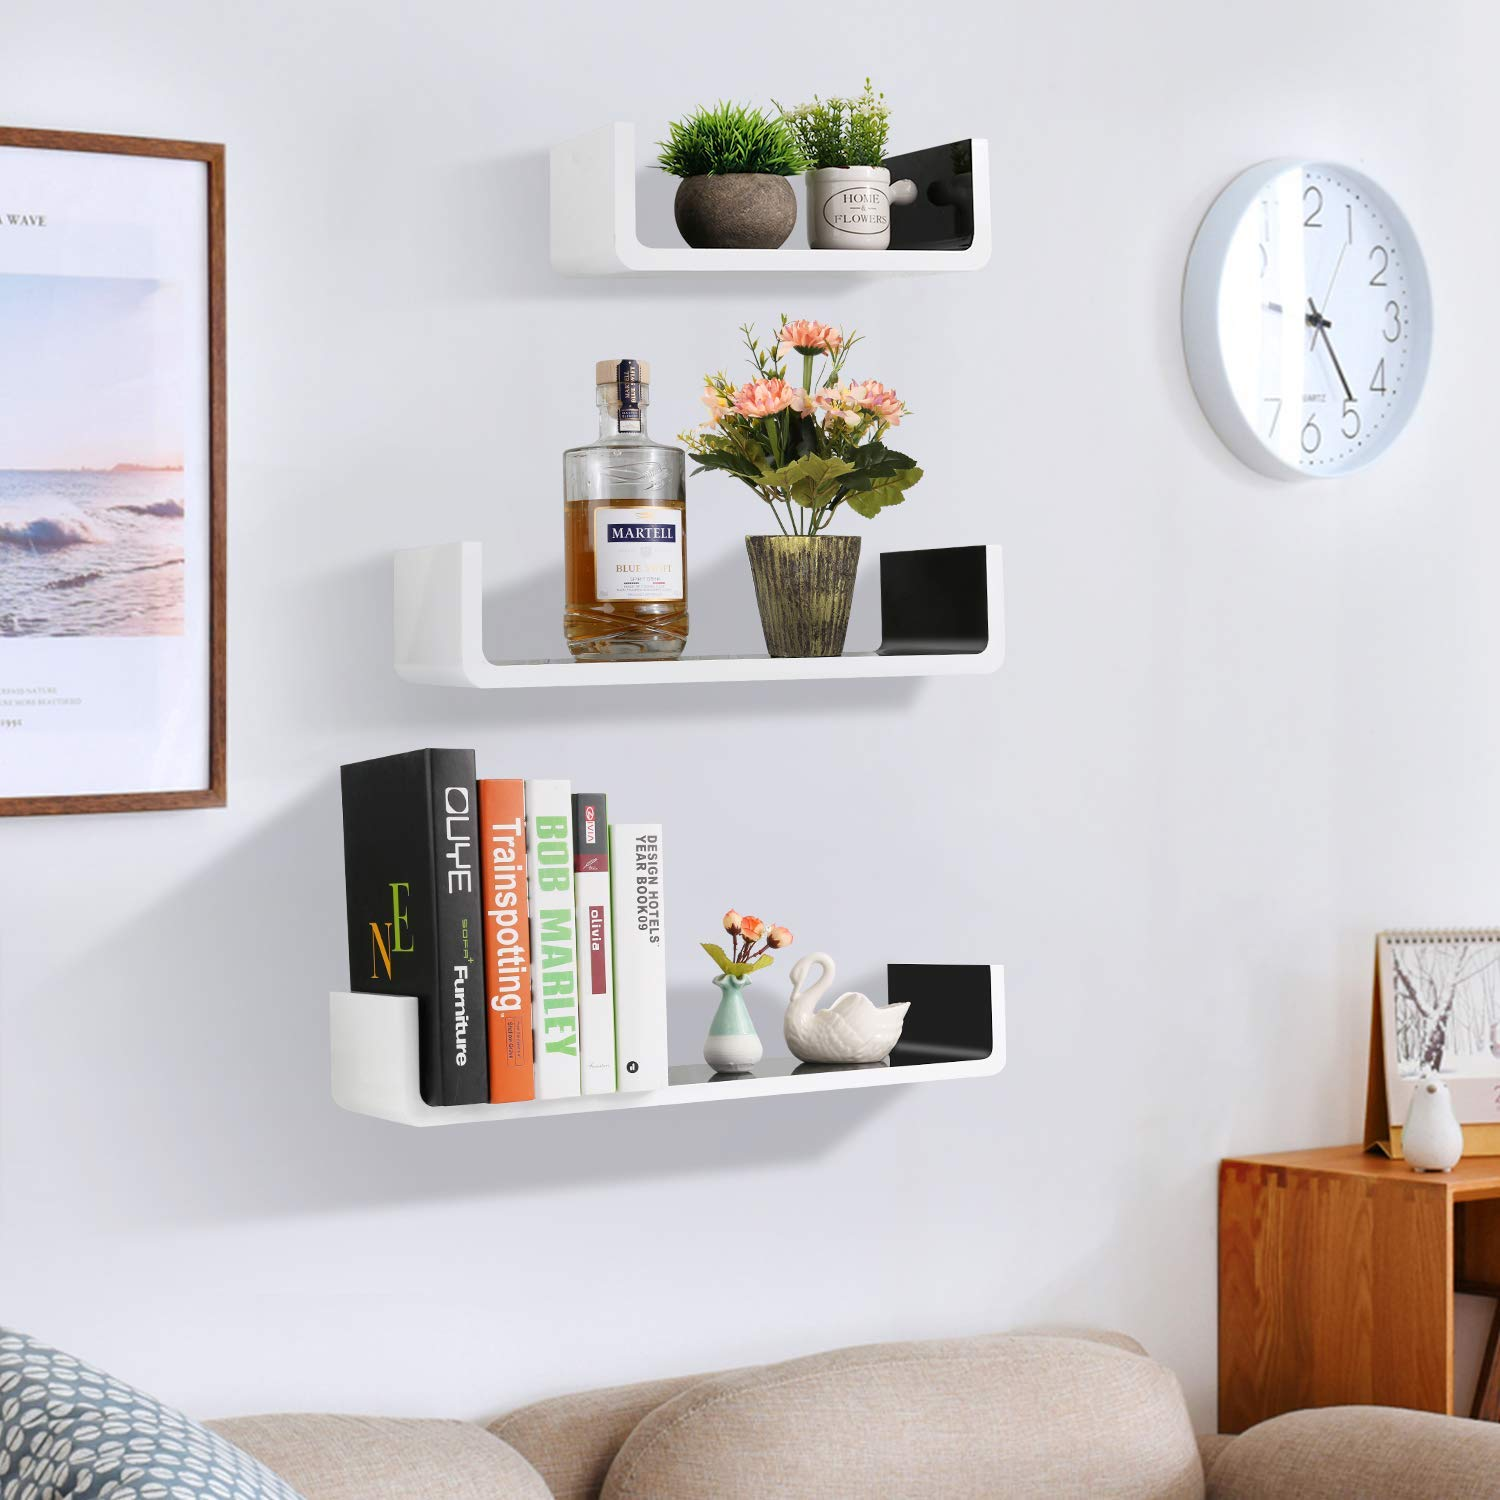 white and black wall shelves floating wooden qal lacquer shelf shelving bookshelf storage set shape mount bookcase for living room unit kitchen furniture xbox diy entryway bench